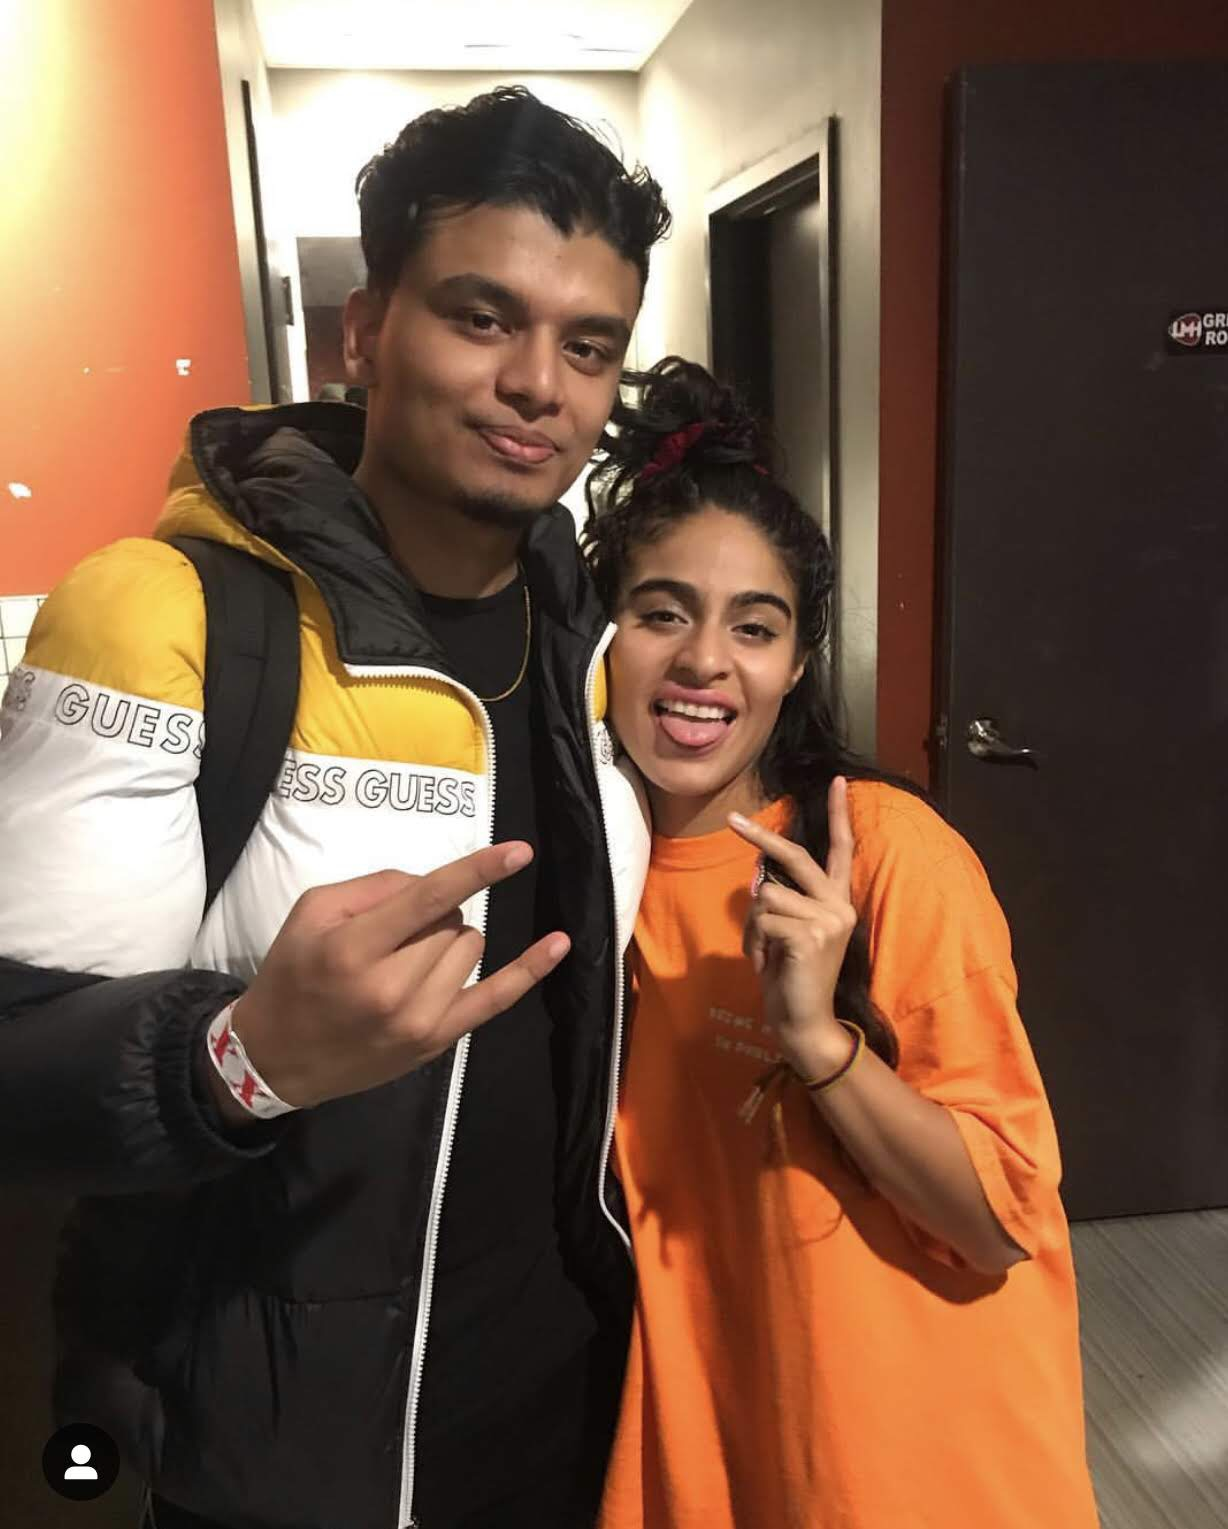 Backstage doing magic for 3 x Juno award winning singer and song writer Jessie Reyez